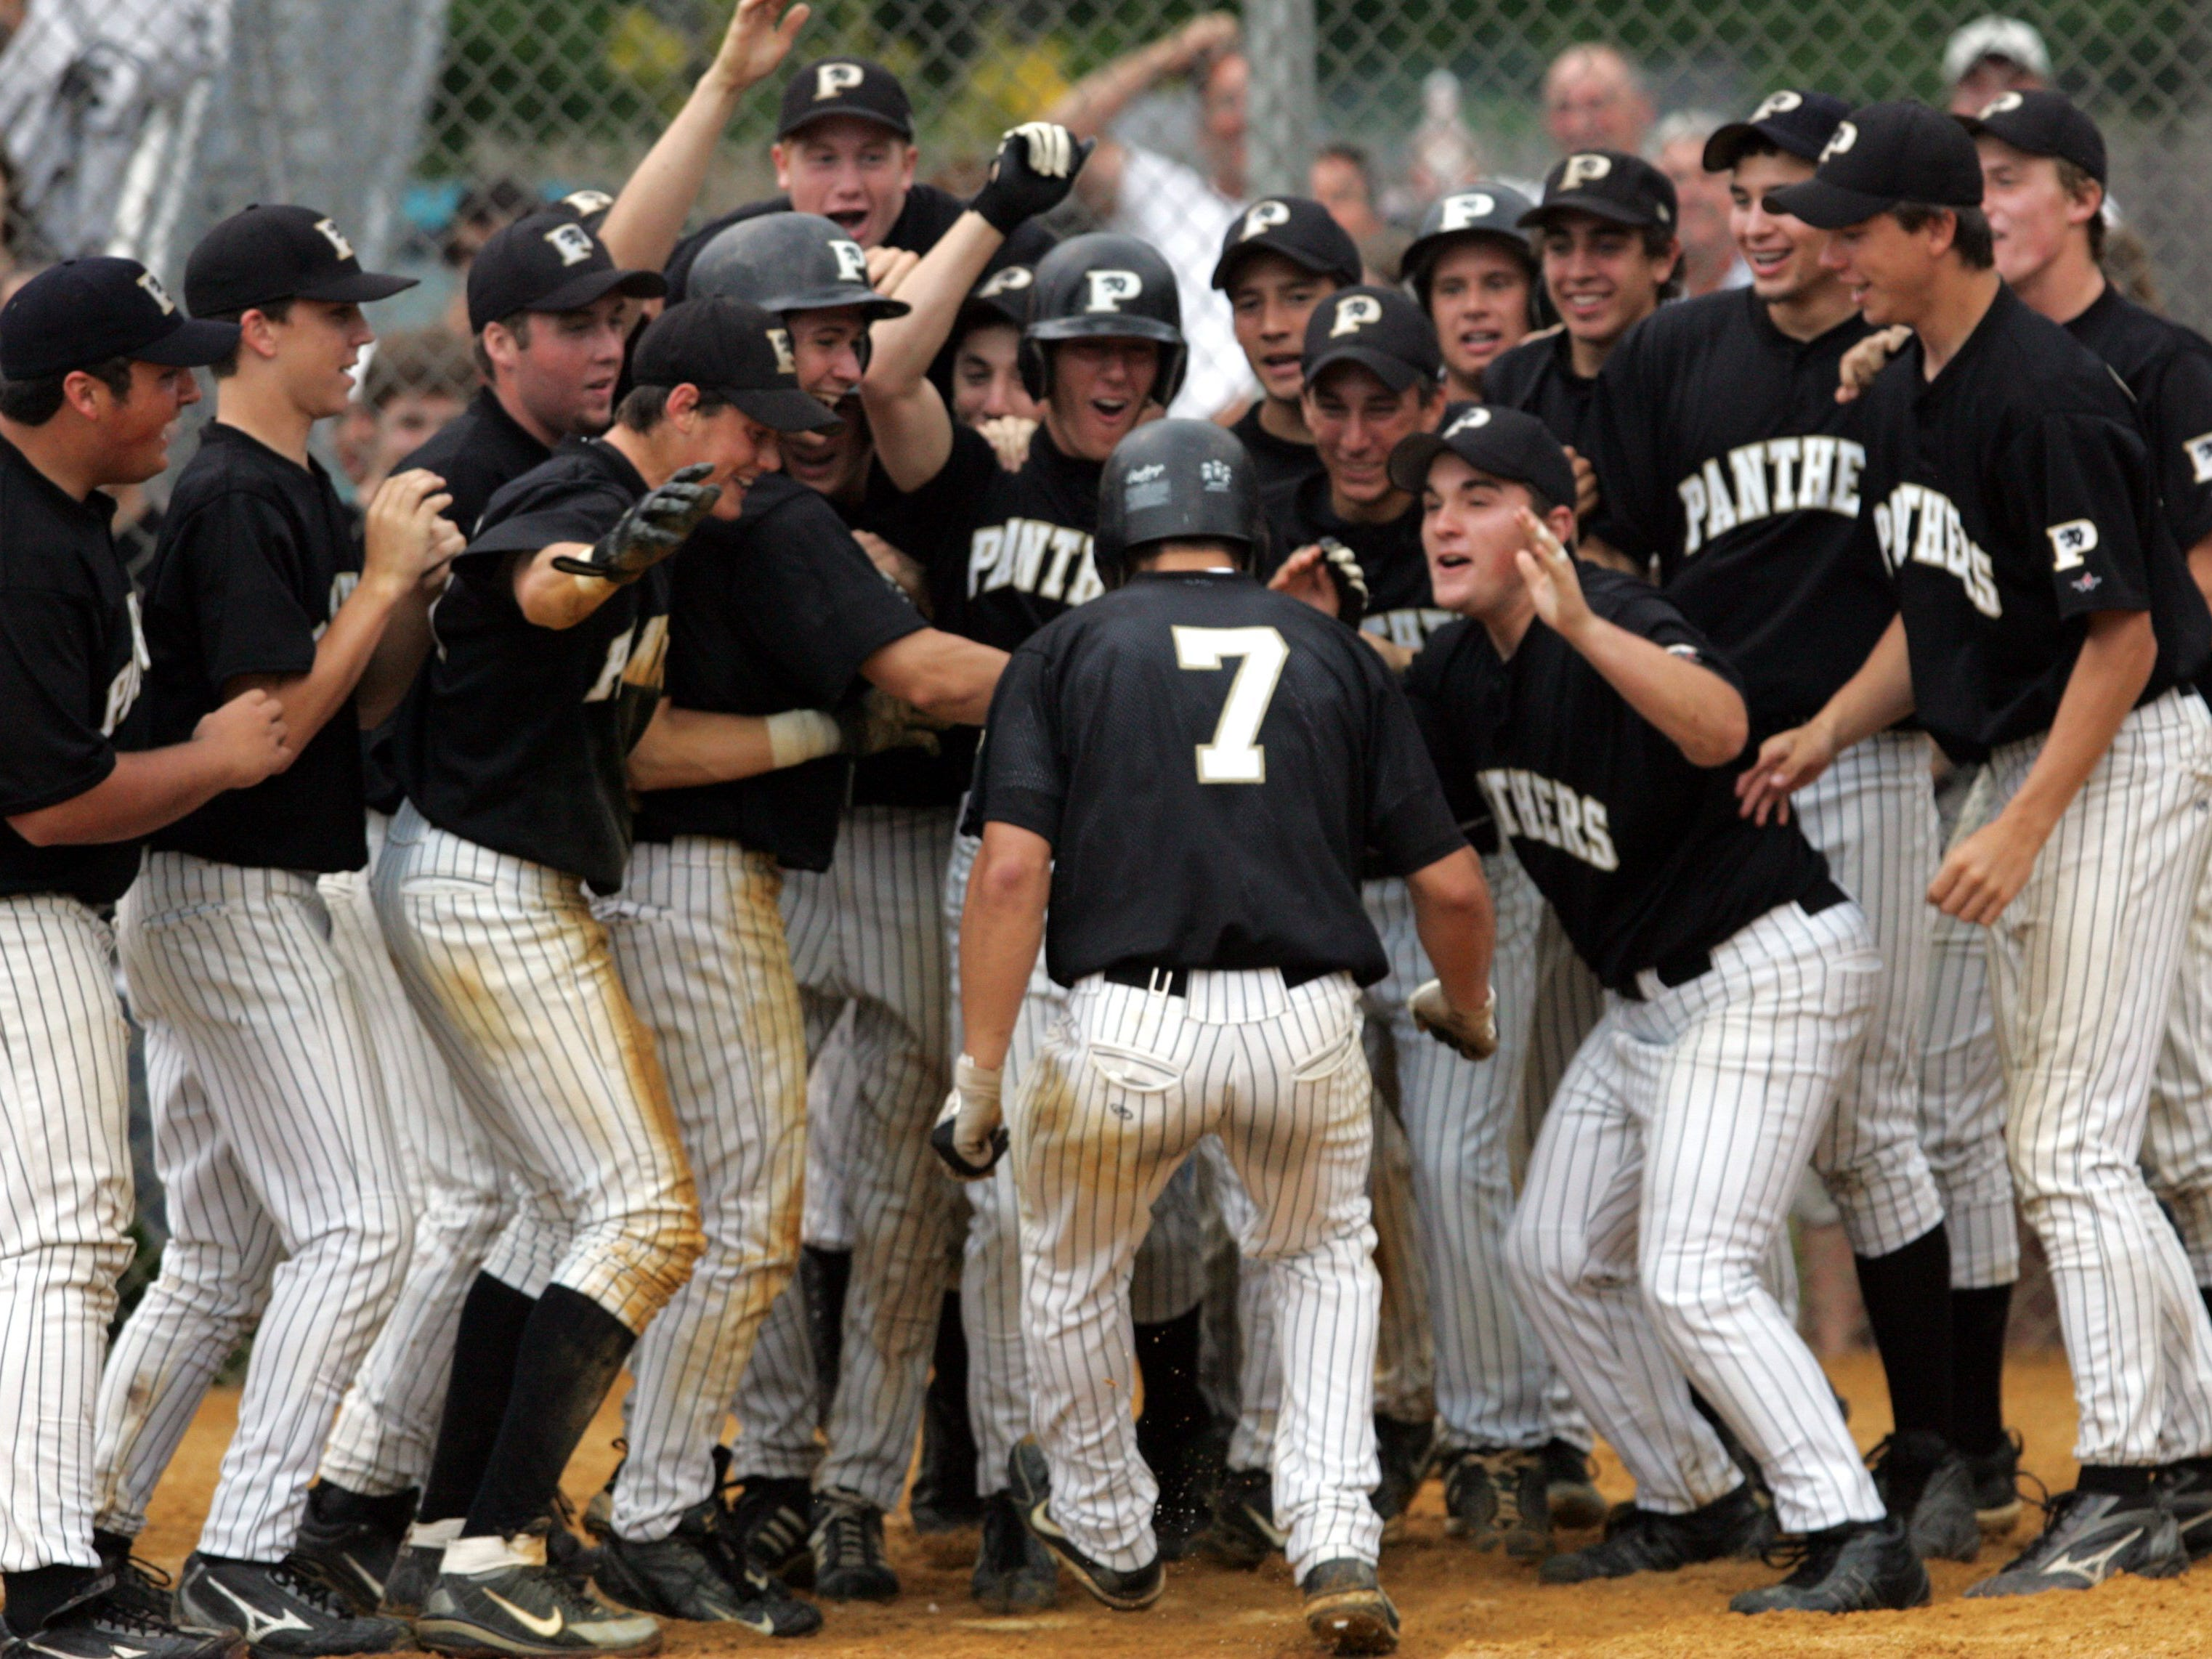 Point Boro's Pat Biserta is greeted at home plate and a grand slam in a 2006 state tournament game against Delran. Biserta hit 17 career home runs for the Panthers.